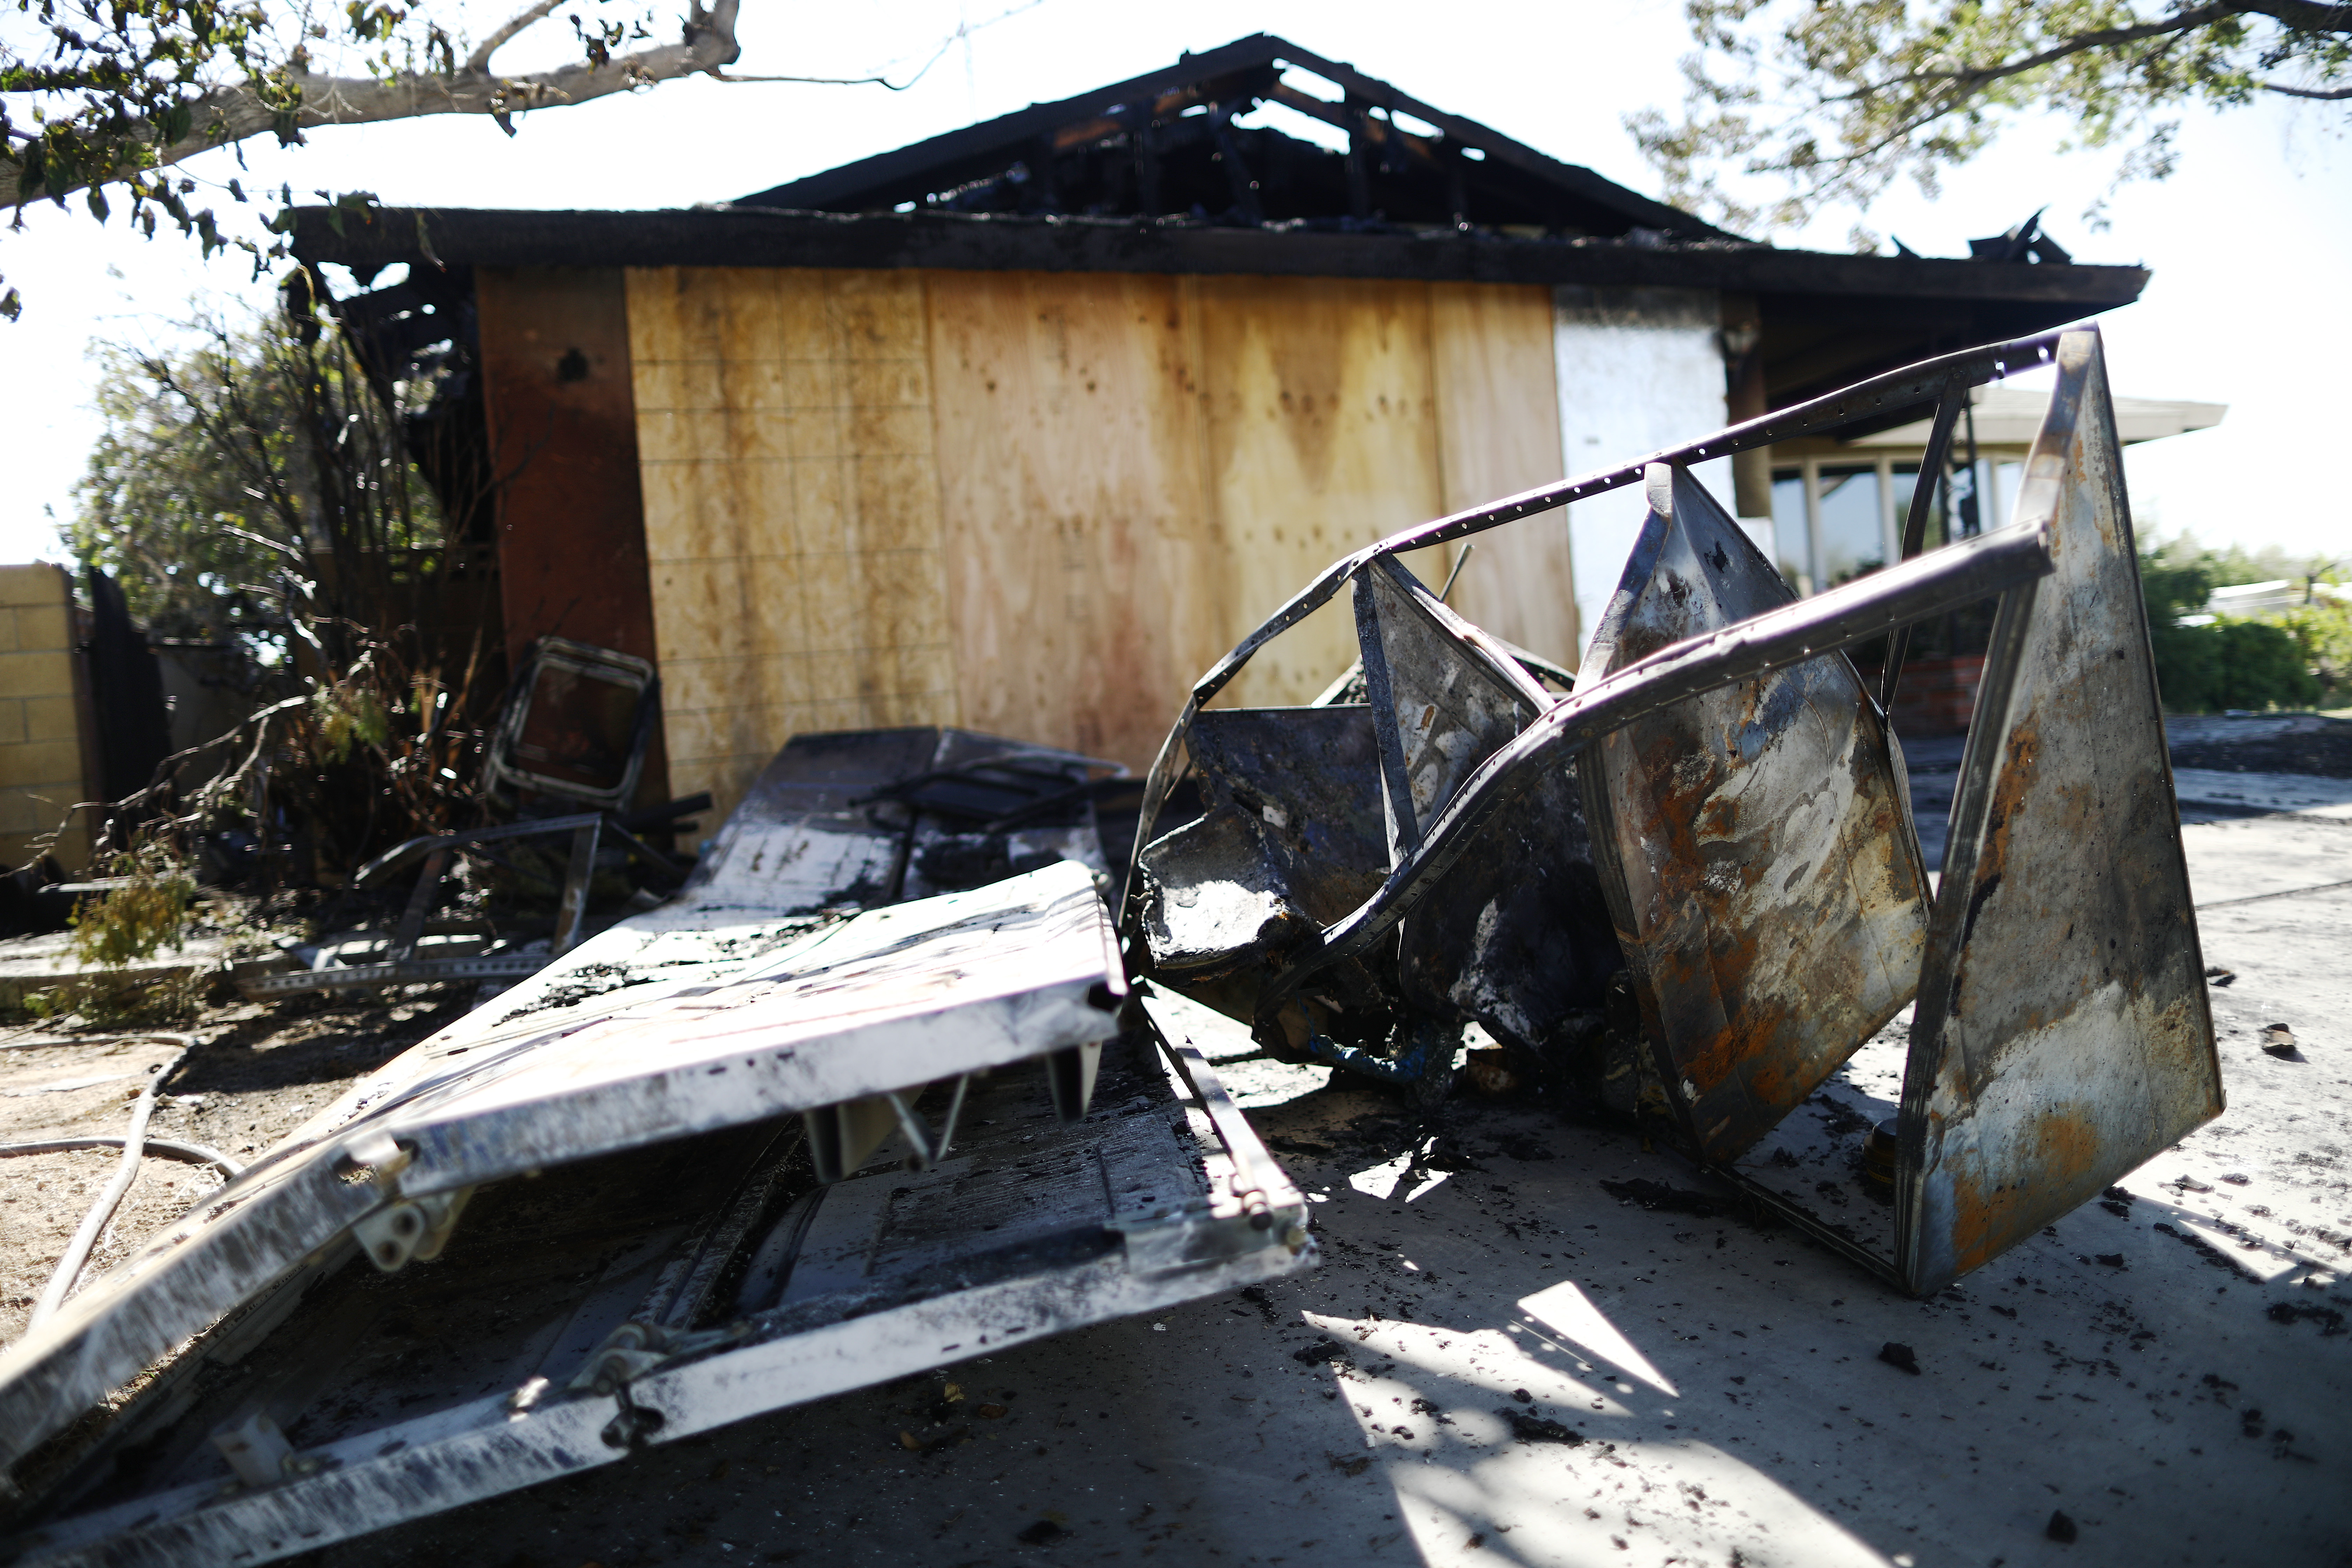 A home in Ridgecrest caught fire following a 6.4 magnitude earthquake on Thursday.